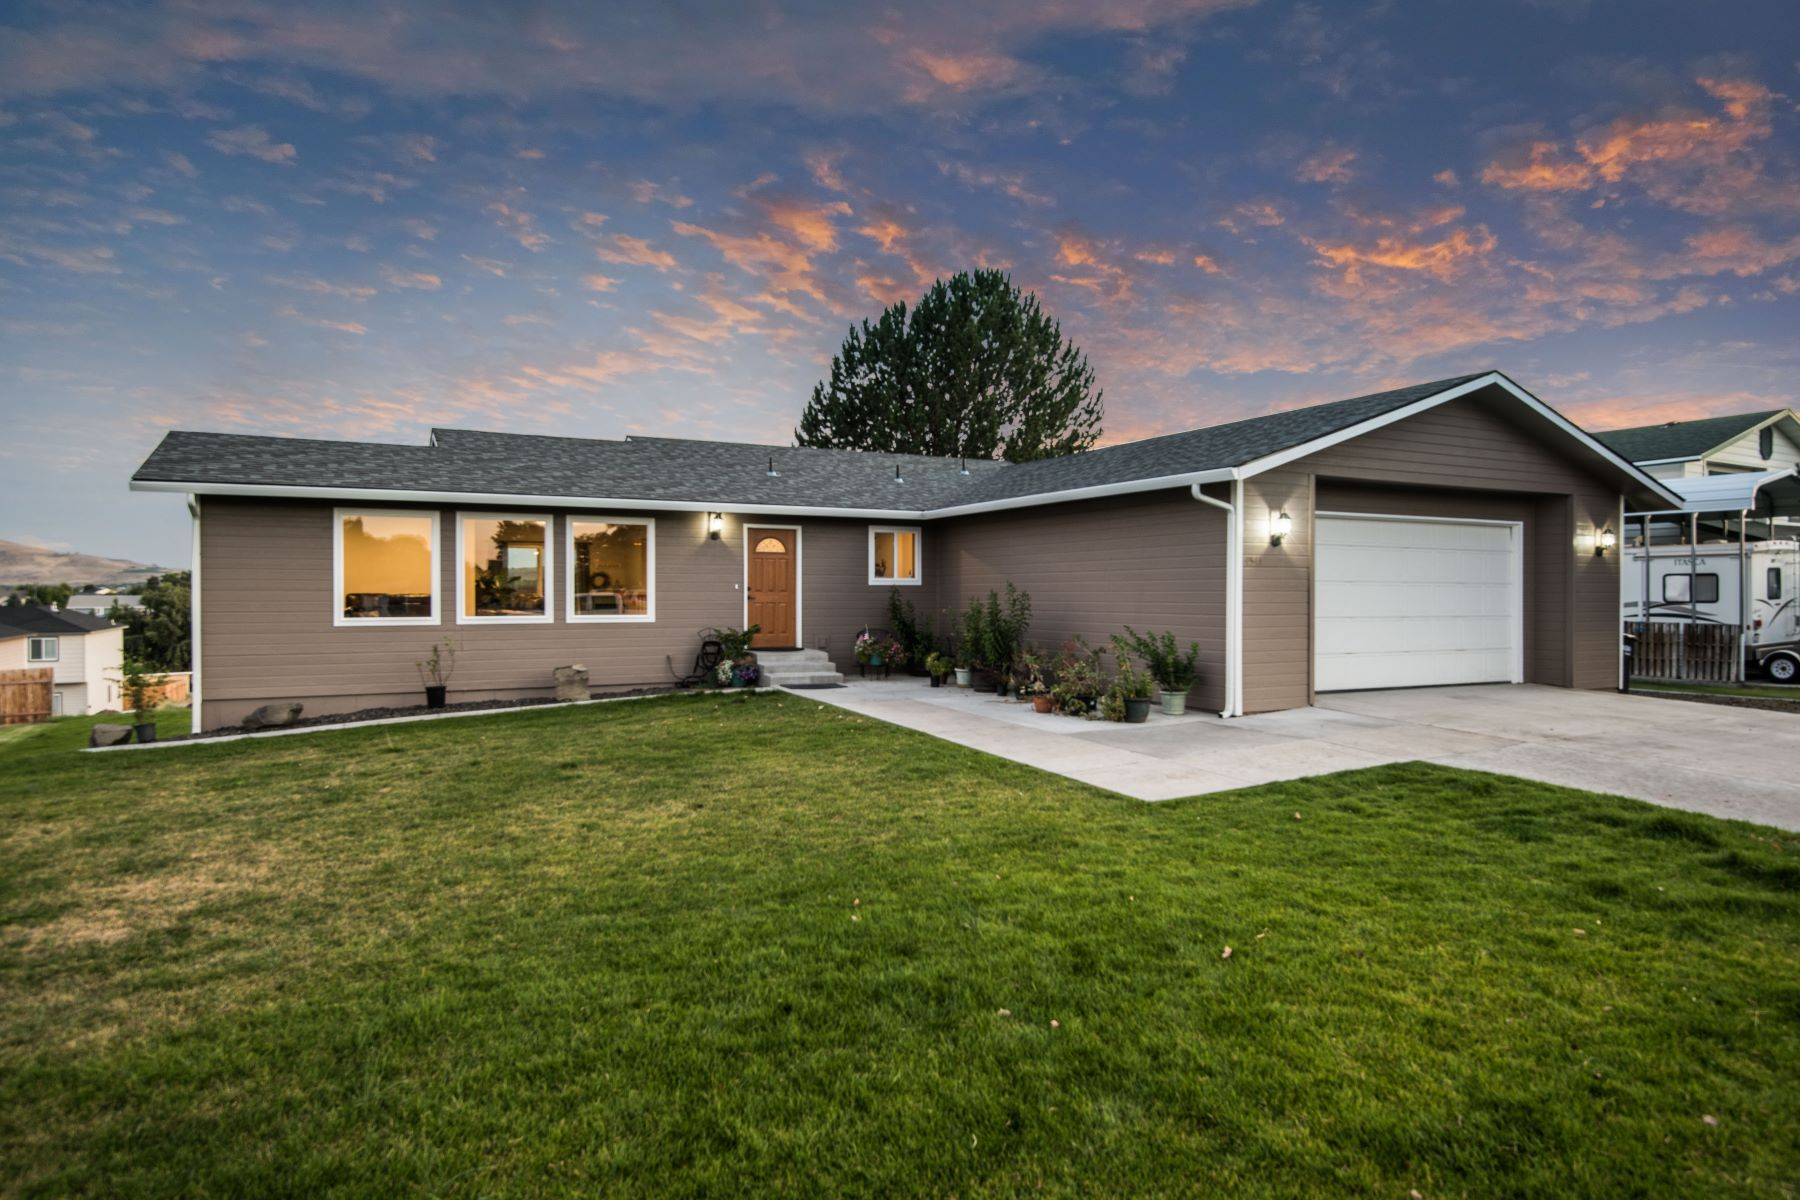 Single Family Homes for Sale at Room for everyone! 4541 Maple Lane West Richland, Washington 99353 United States